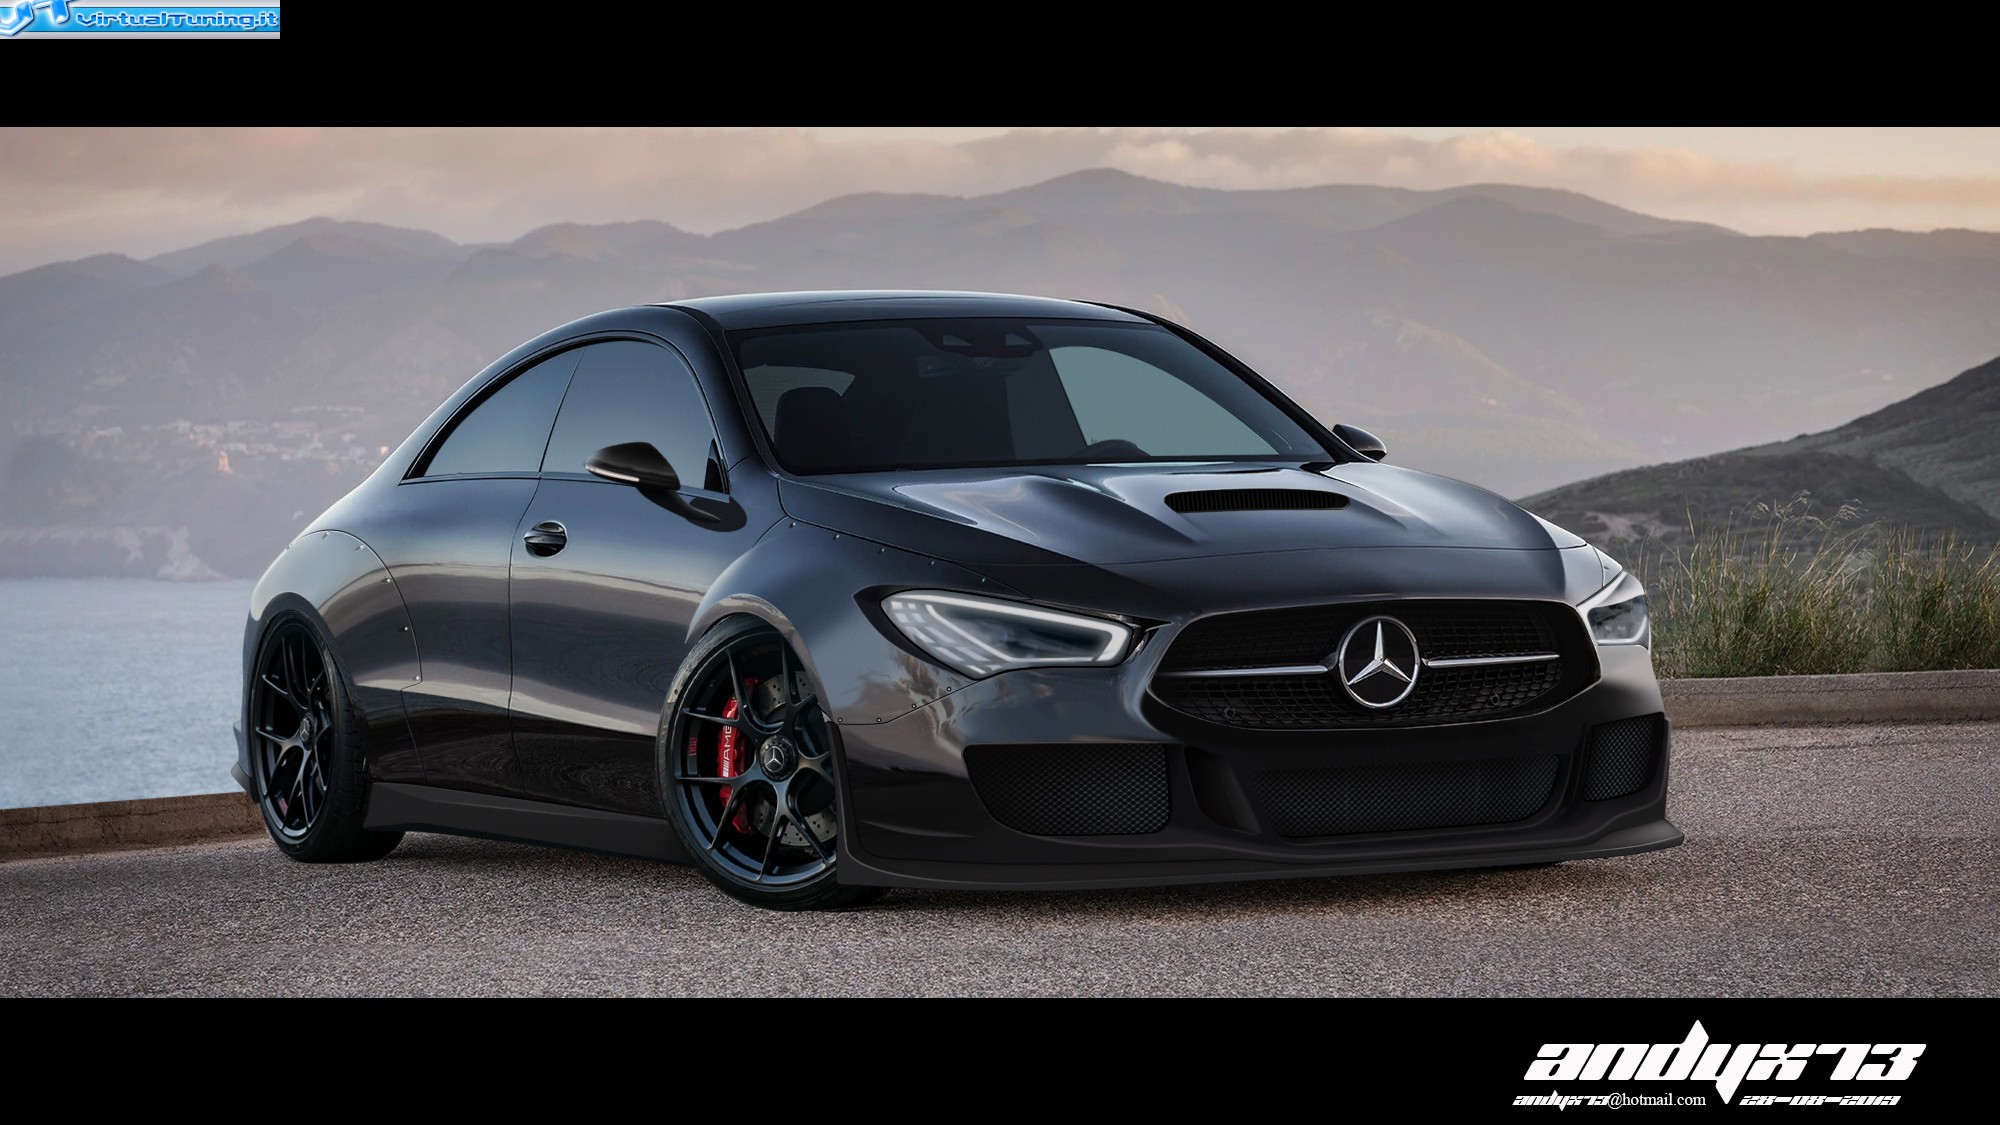 VirtualTuning MERCEDES CLA by andyx73